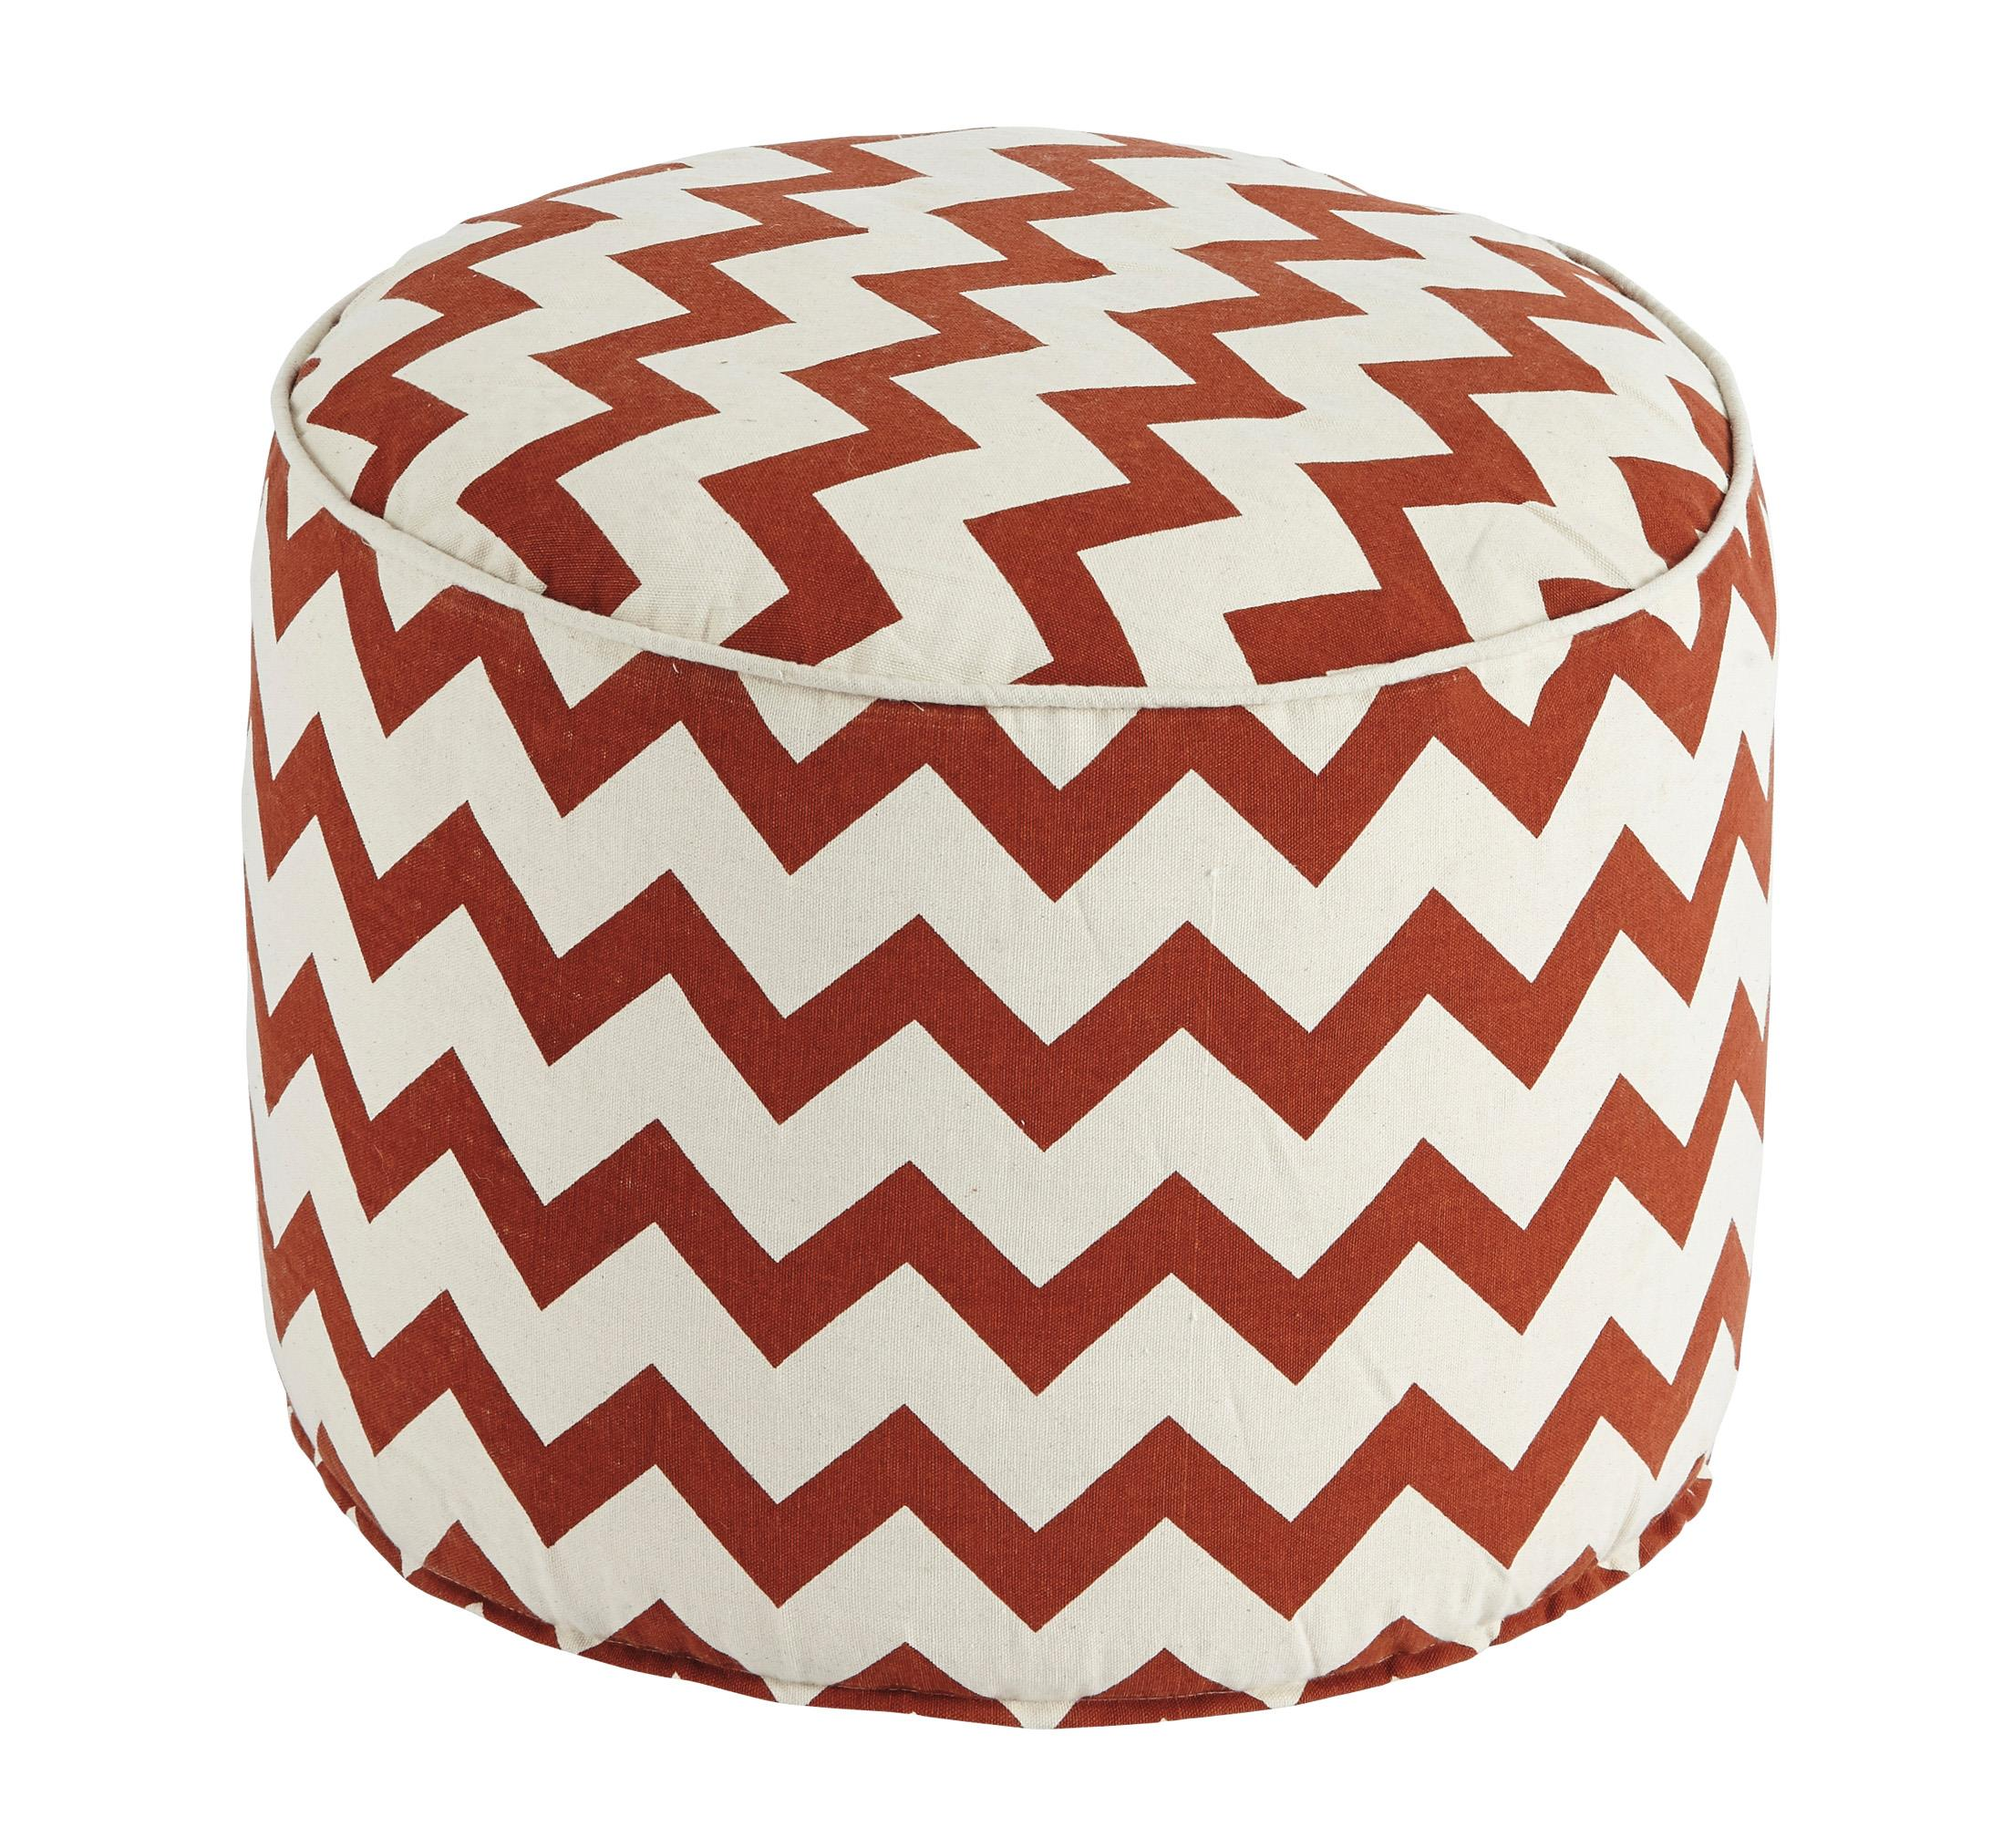 Signature Design by Ashley Poufs Chevron - Beige/Rust Pouf - Item Number: A1000427